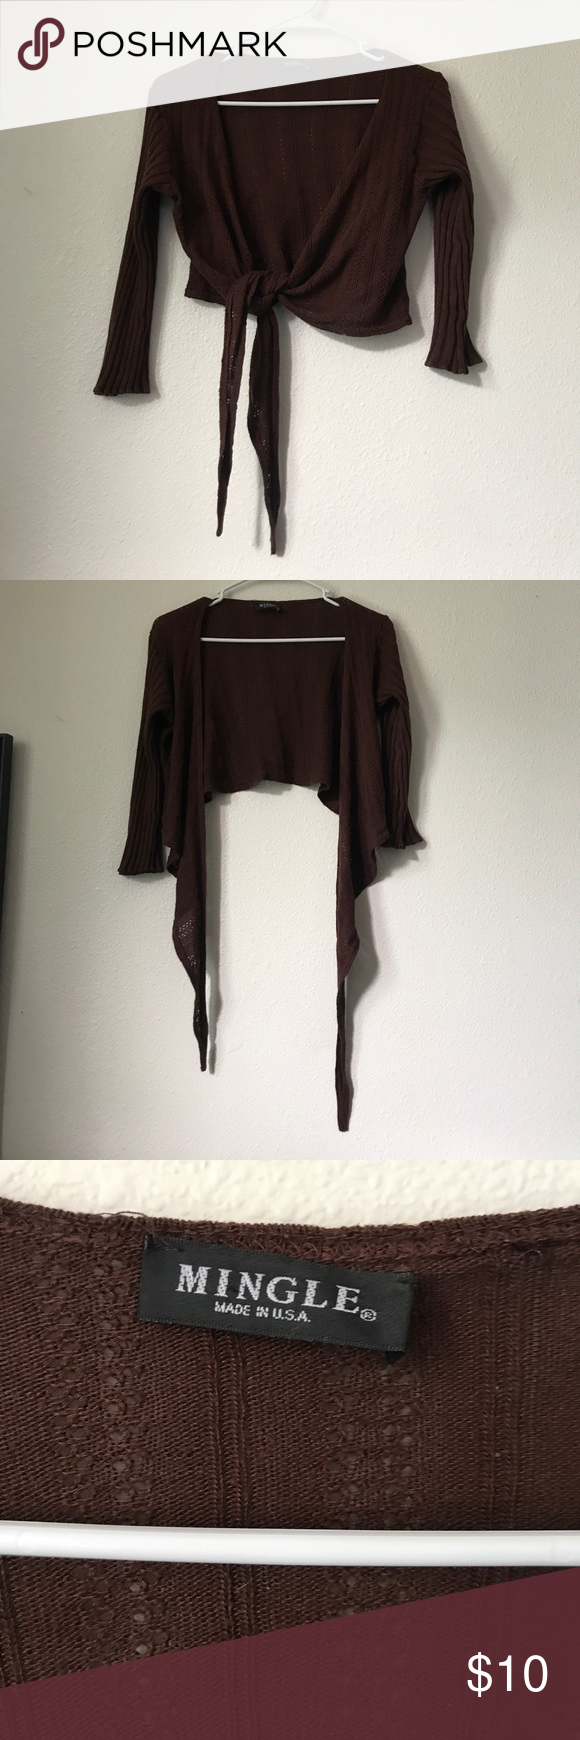 Brown Cardigan | Brown, Conditioning and Customer support